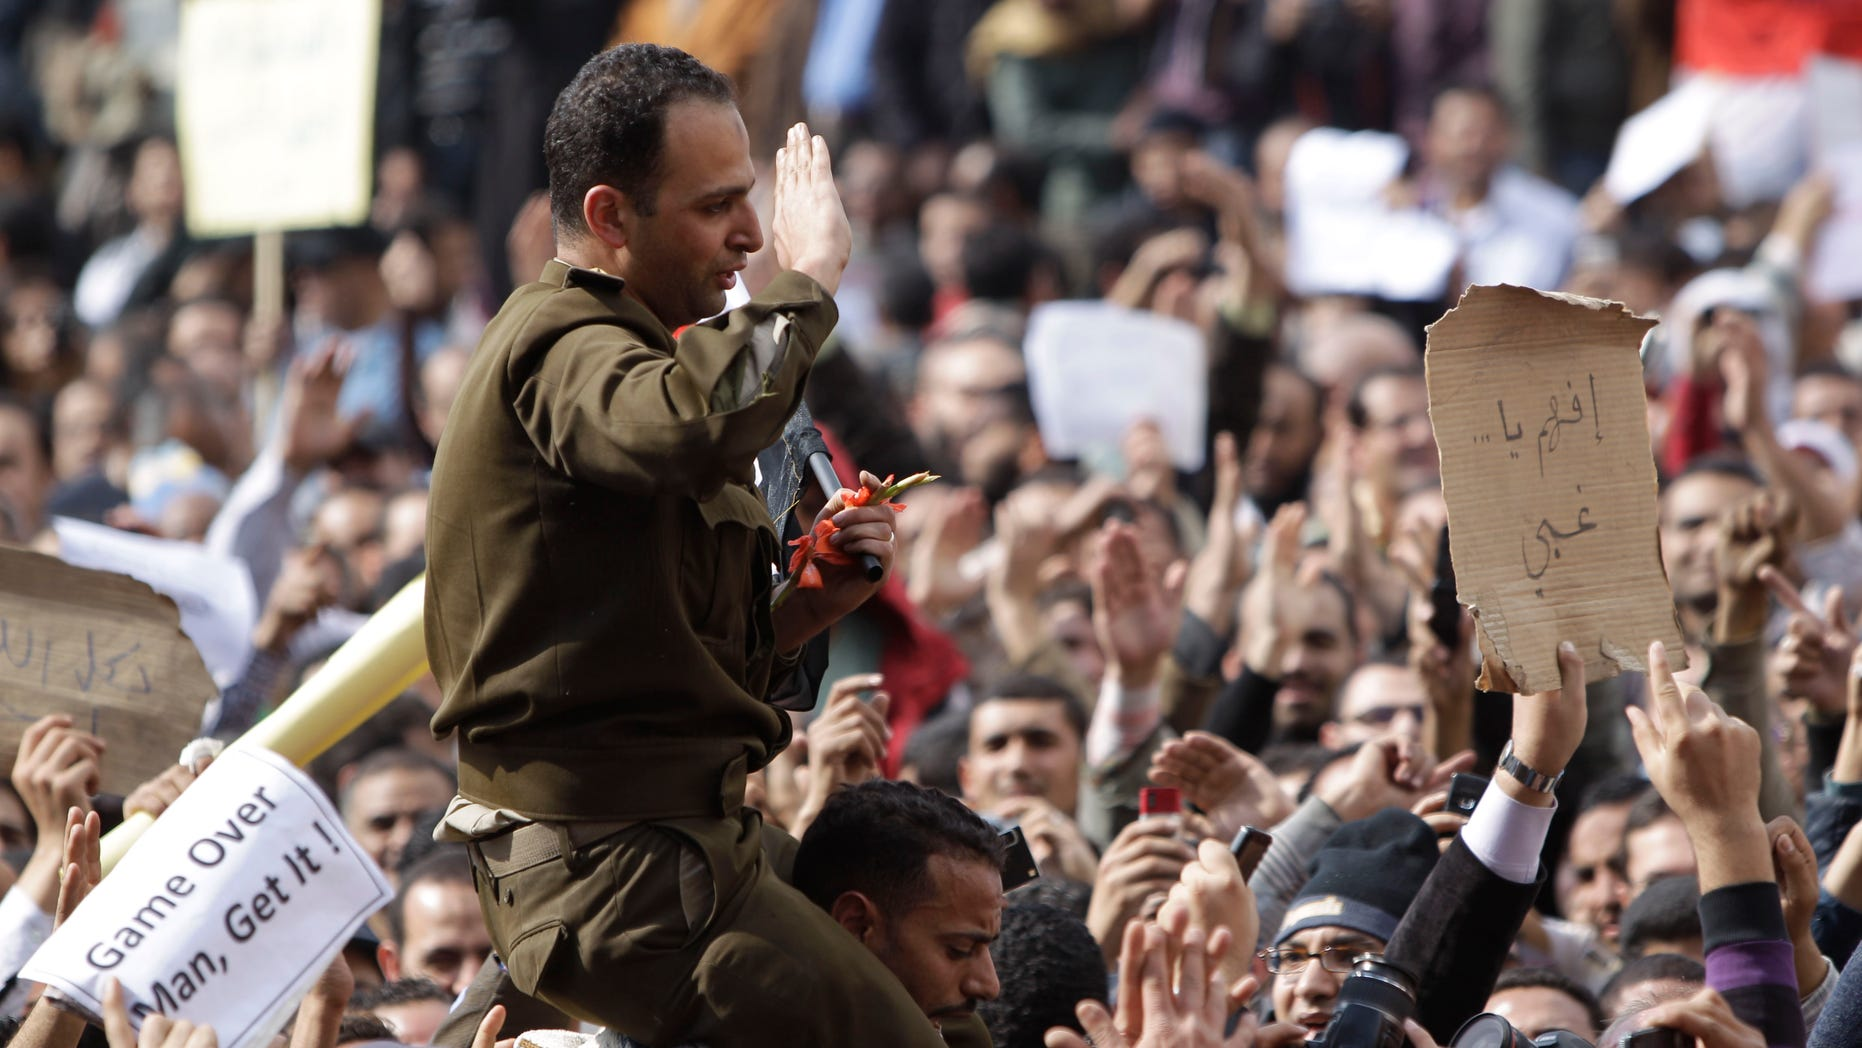 Jan. 31: A man identified only as Fathi, wearing the uniform of a captain in the Egyptian army, is carried by demonstrators on Tahrir, or Liberation Square, in Cairo, Egypt. A coalition of opposition groups called for a million people to take to Cairo's streets Tuesday to demand the removal of President Hosni Mubarak.